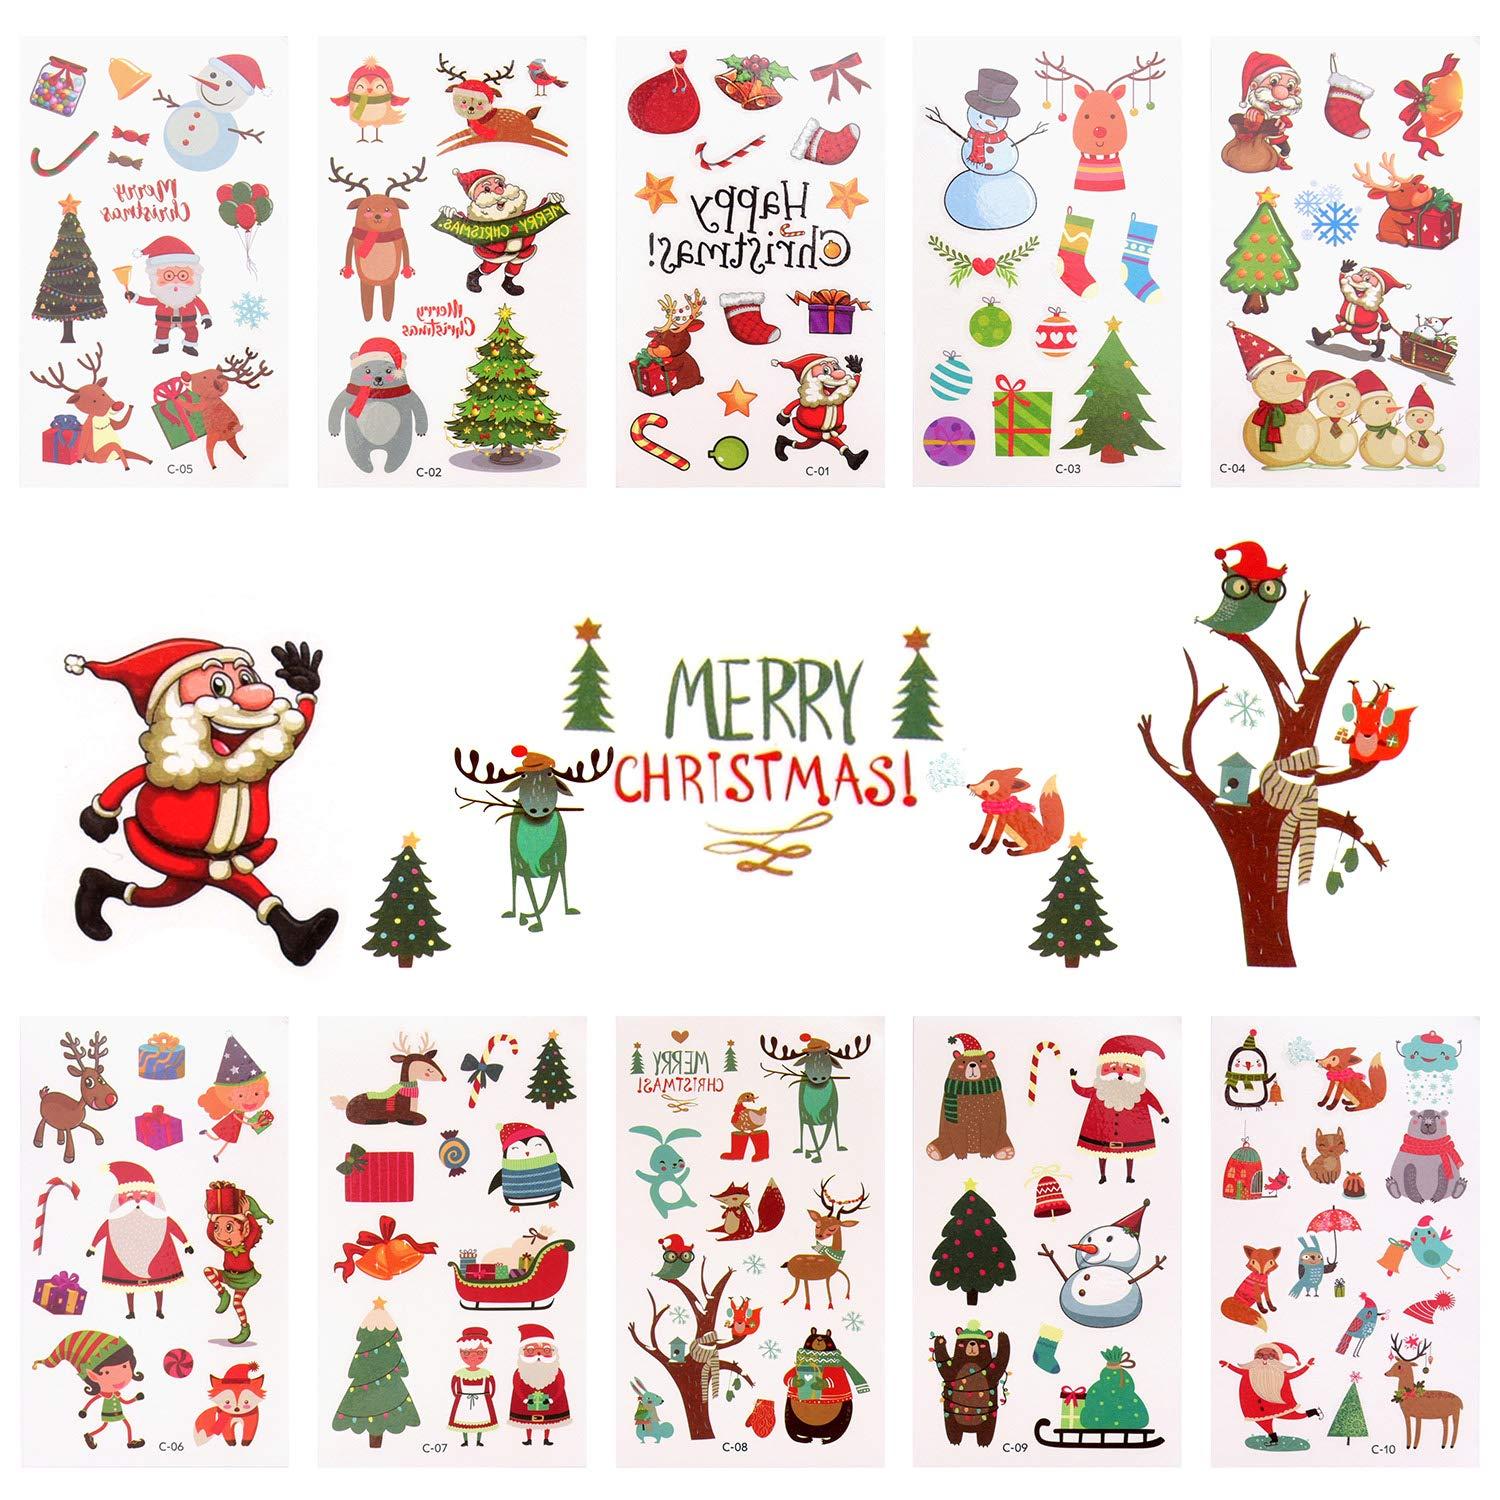 Christmas Temporary Tattoos Stickers,Christmas Decorations with Santa Christmas Snowman Snowflake Bell Gift Bags for Kids Christmas Party (10 sheet)